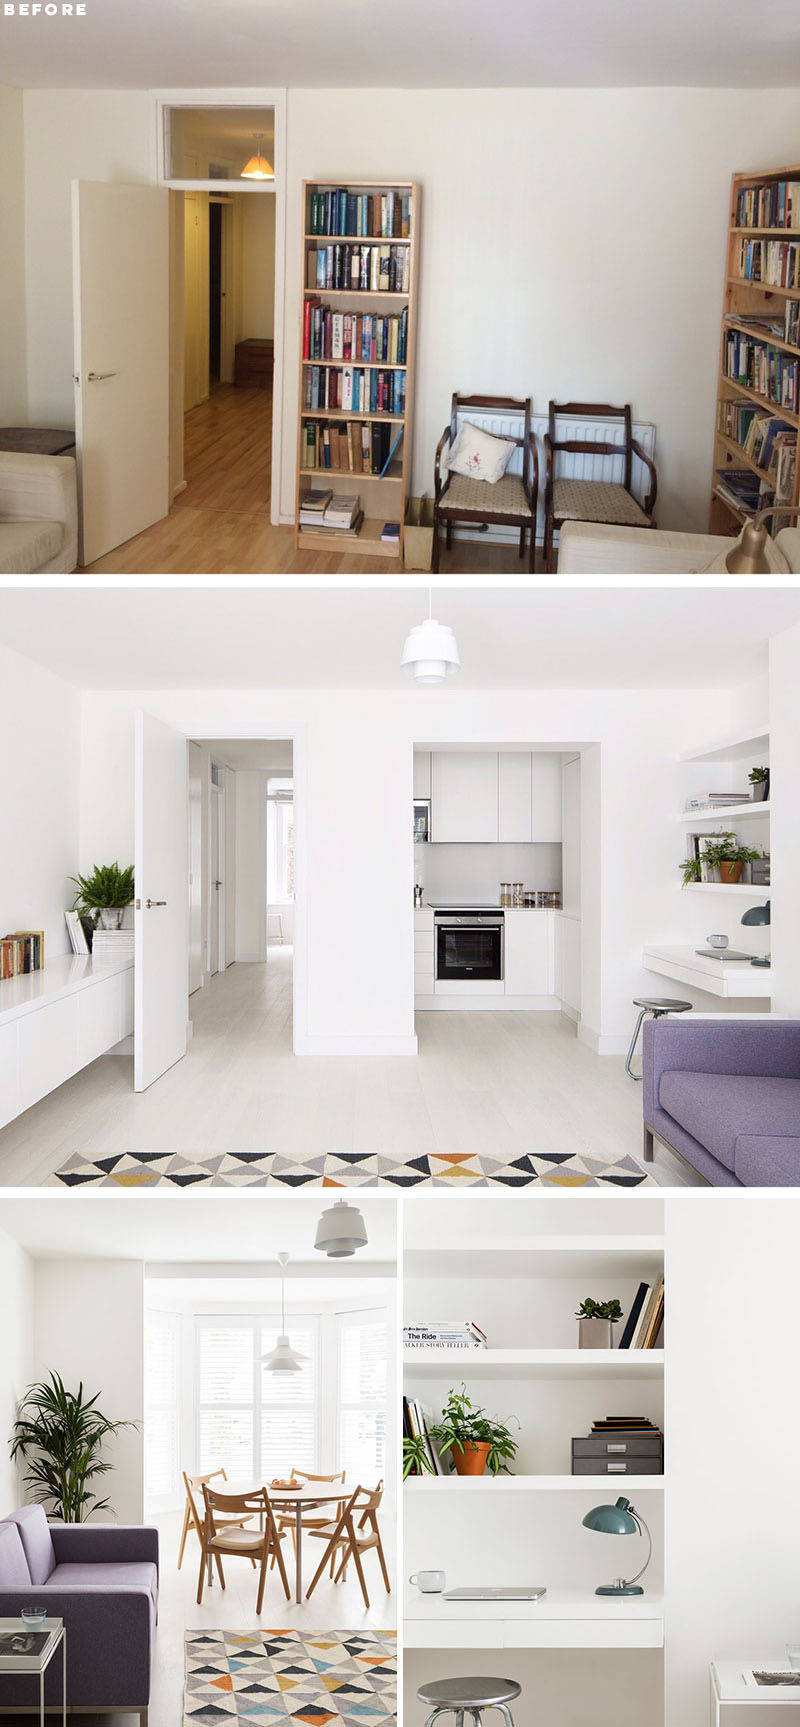 RENOVATION - In order to achieve an open-plan living room and kitchen area, the architects relocated the kitchen to where the bathroom was previously and punched an opening into the structural wall. #ApartmentRenovation #ModernRenovation #InteriorDesign #ApartmentDesign